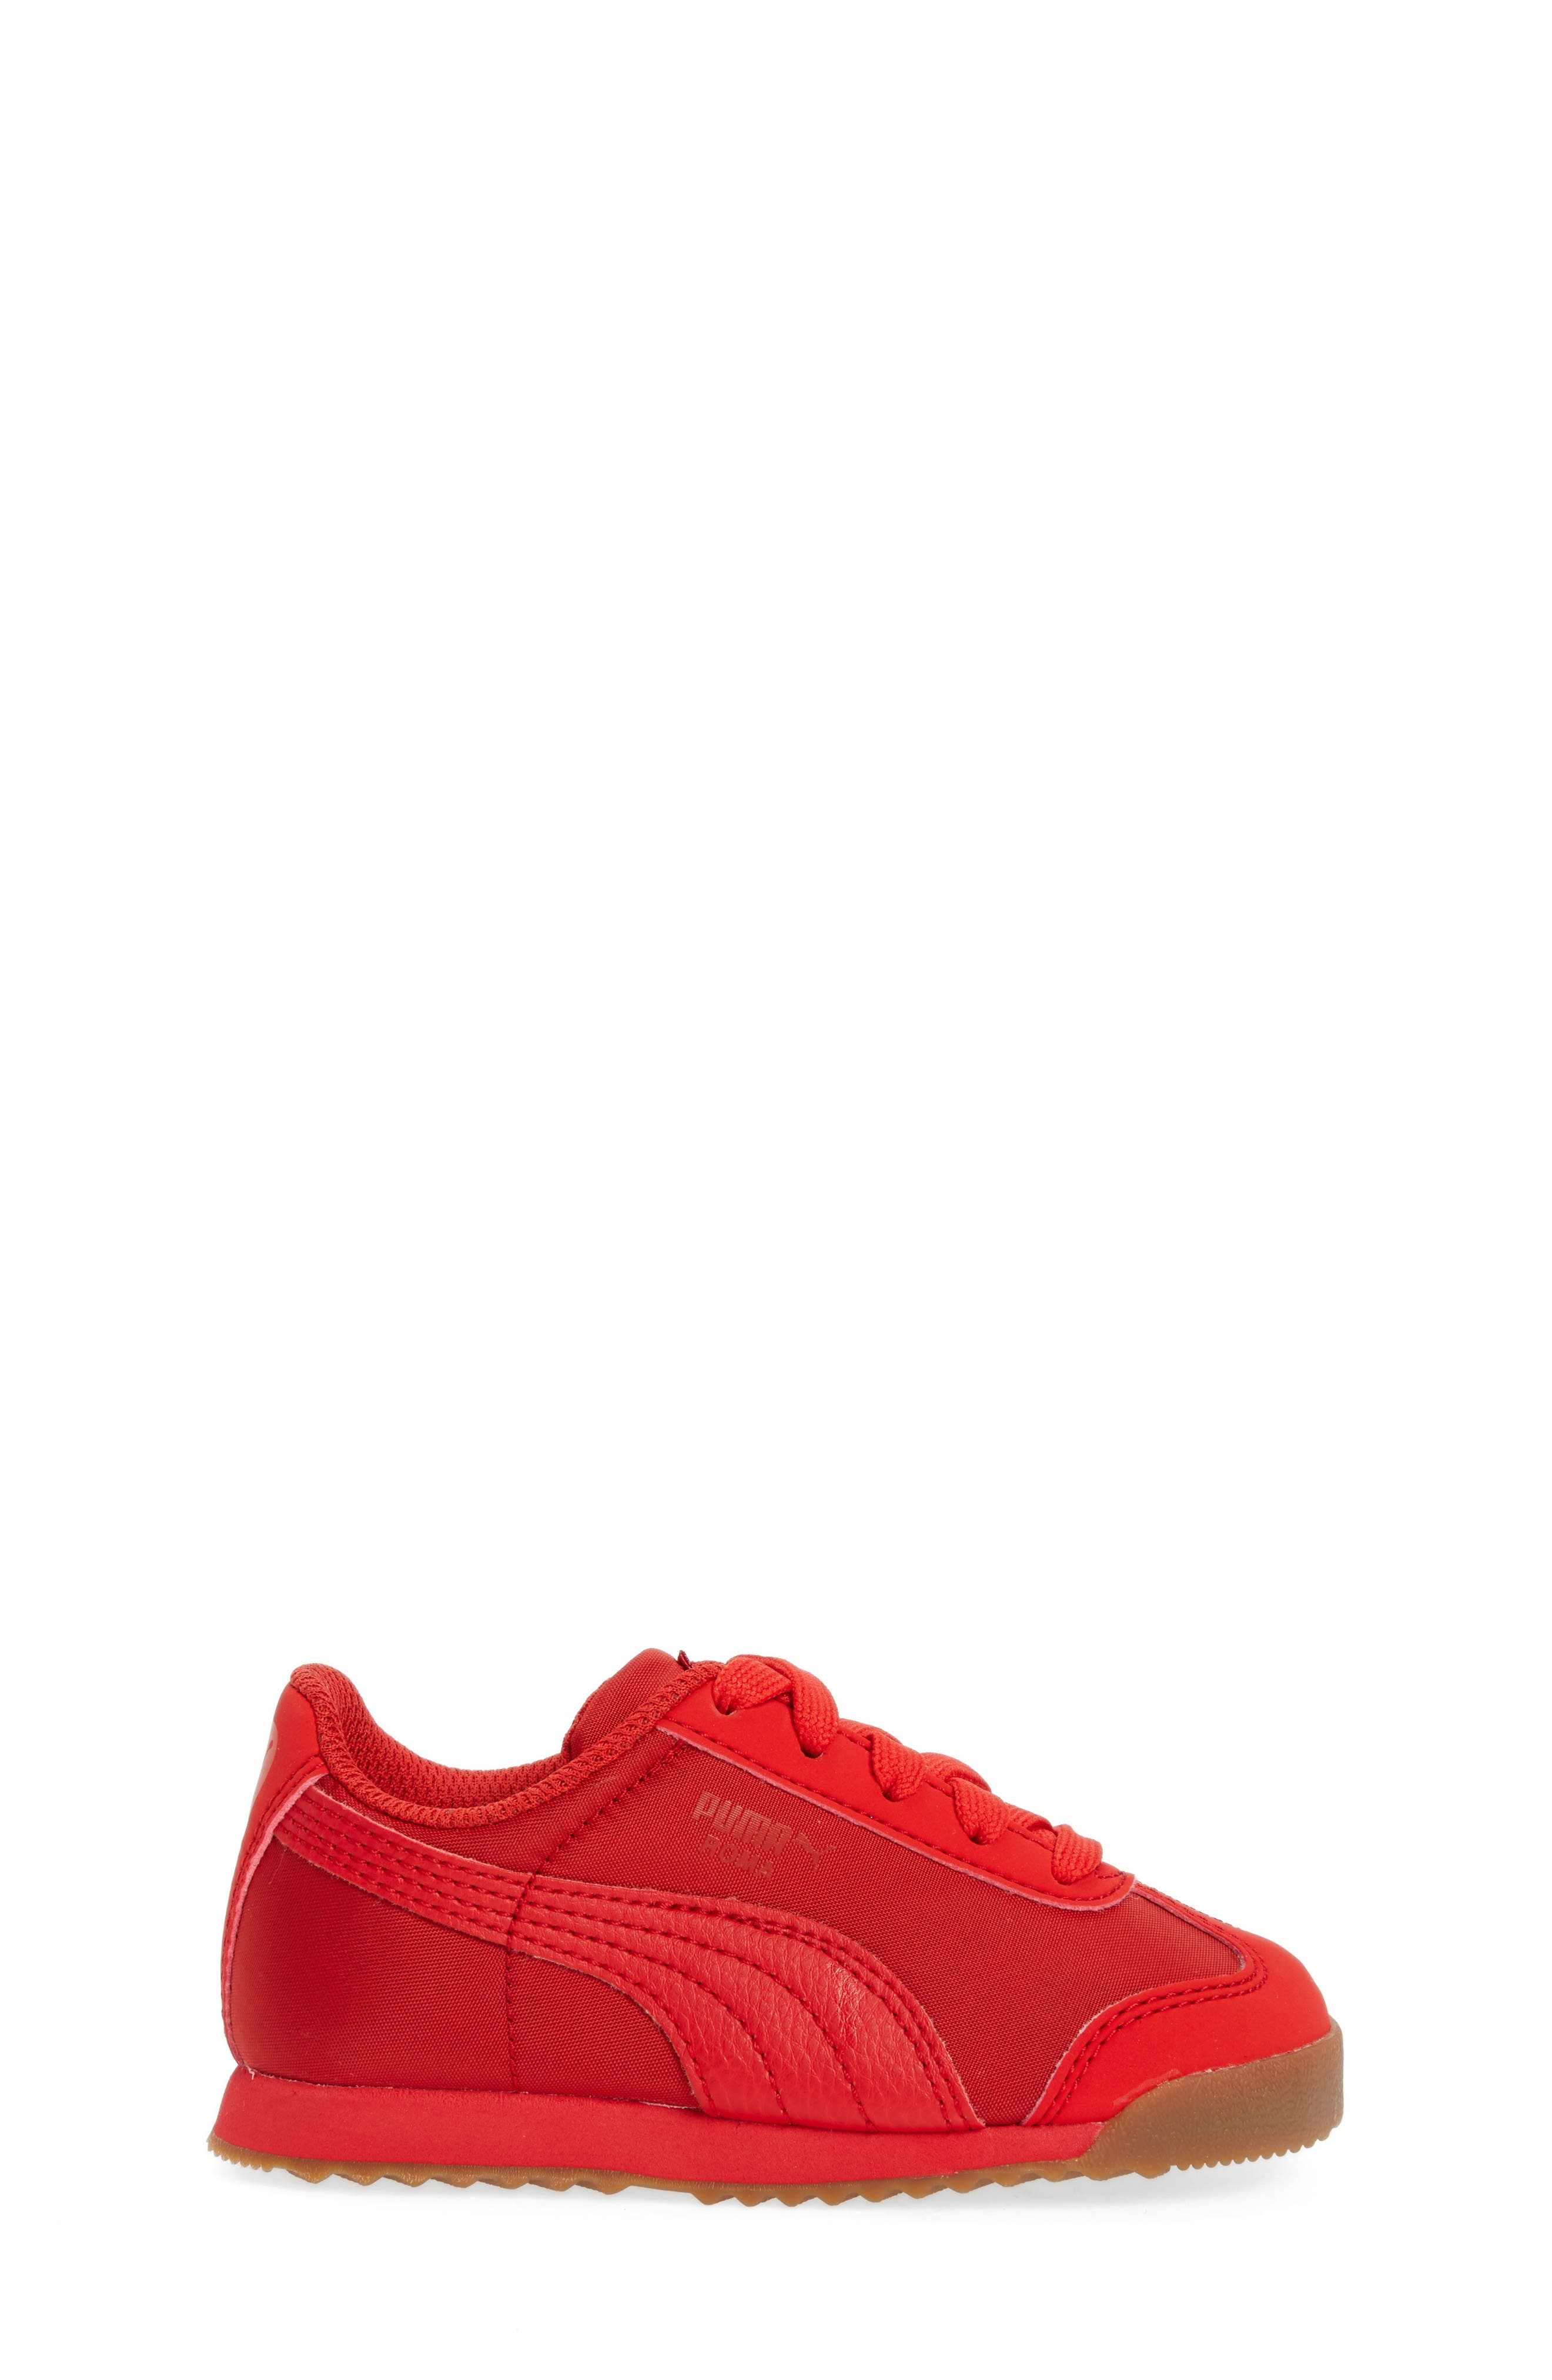 Roma Basic Summer Sneaker,                             Alternate thumbnail 6, color,